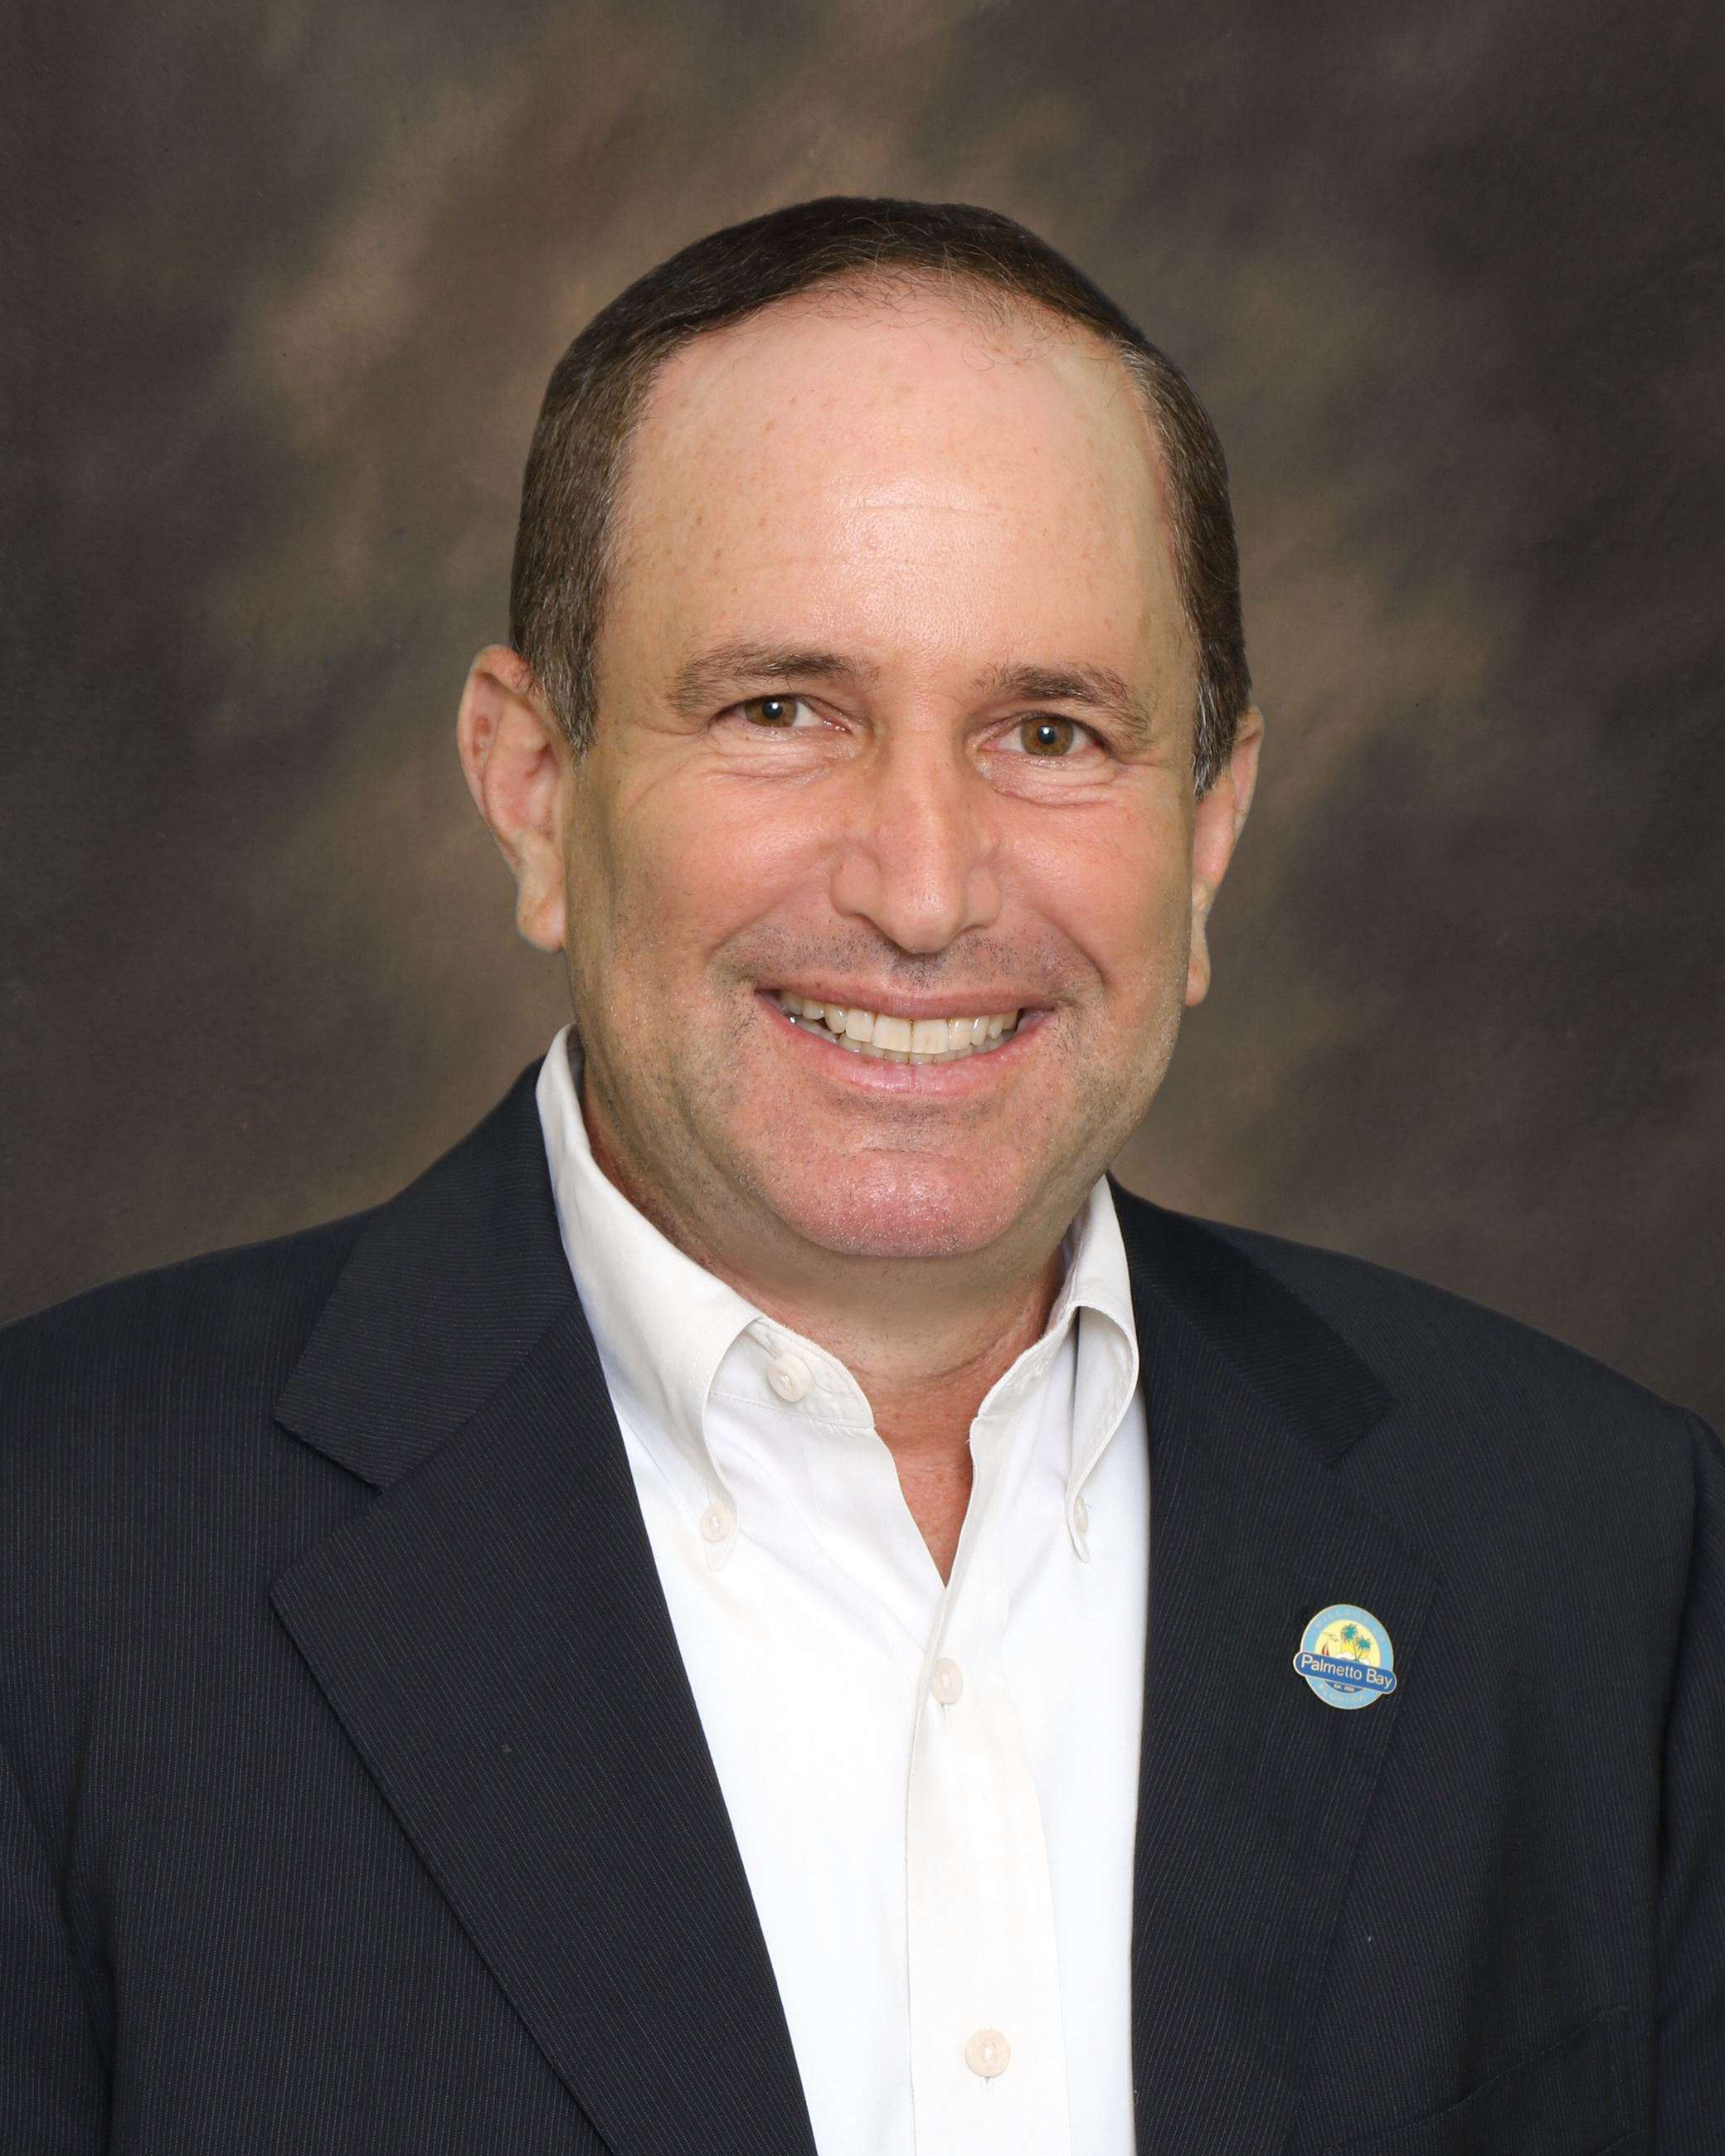 Vice Mayor DuBois Portrait